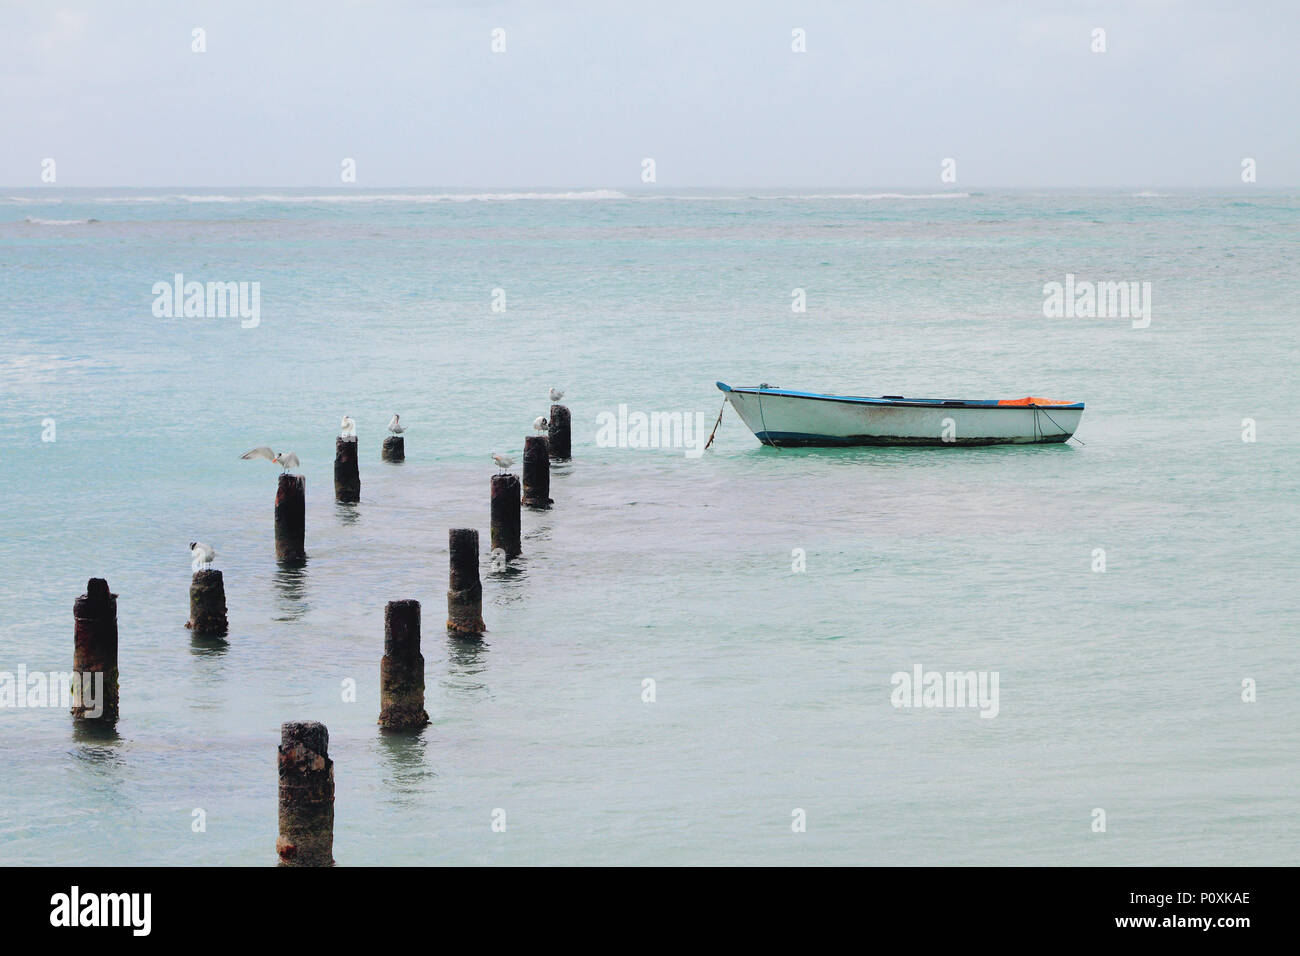 Support of destroyed pier, seagulls and boat. Anse de Sent-An, Pointe-a-Pitre, Guadeloupe - Stock Image